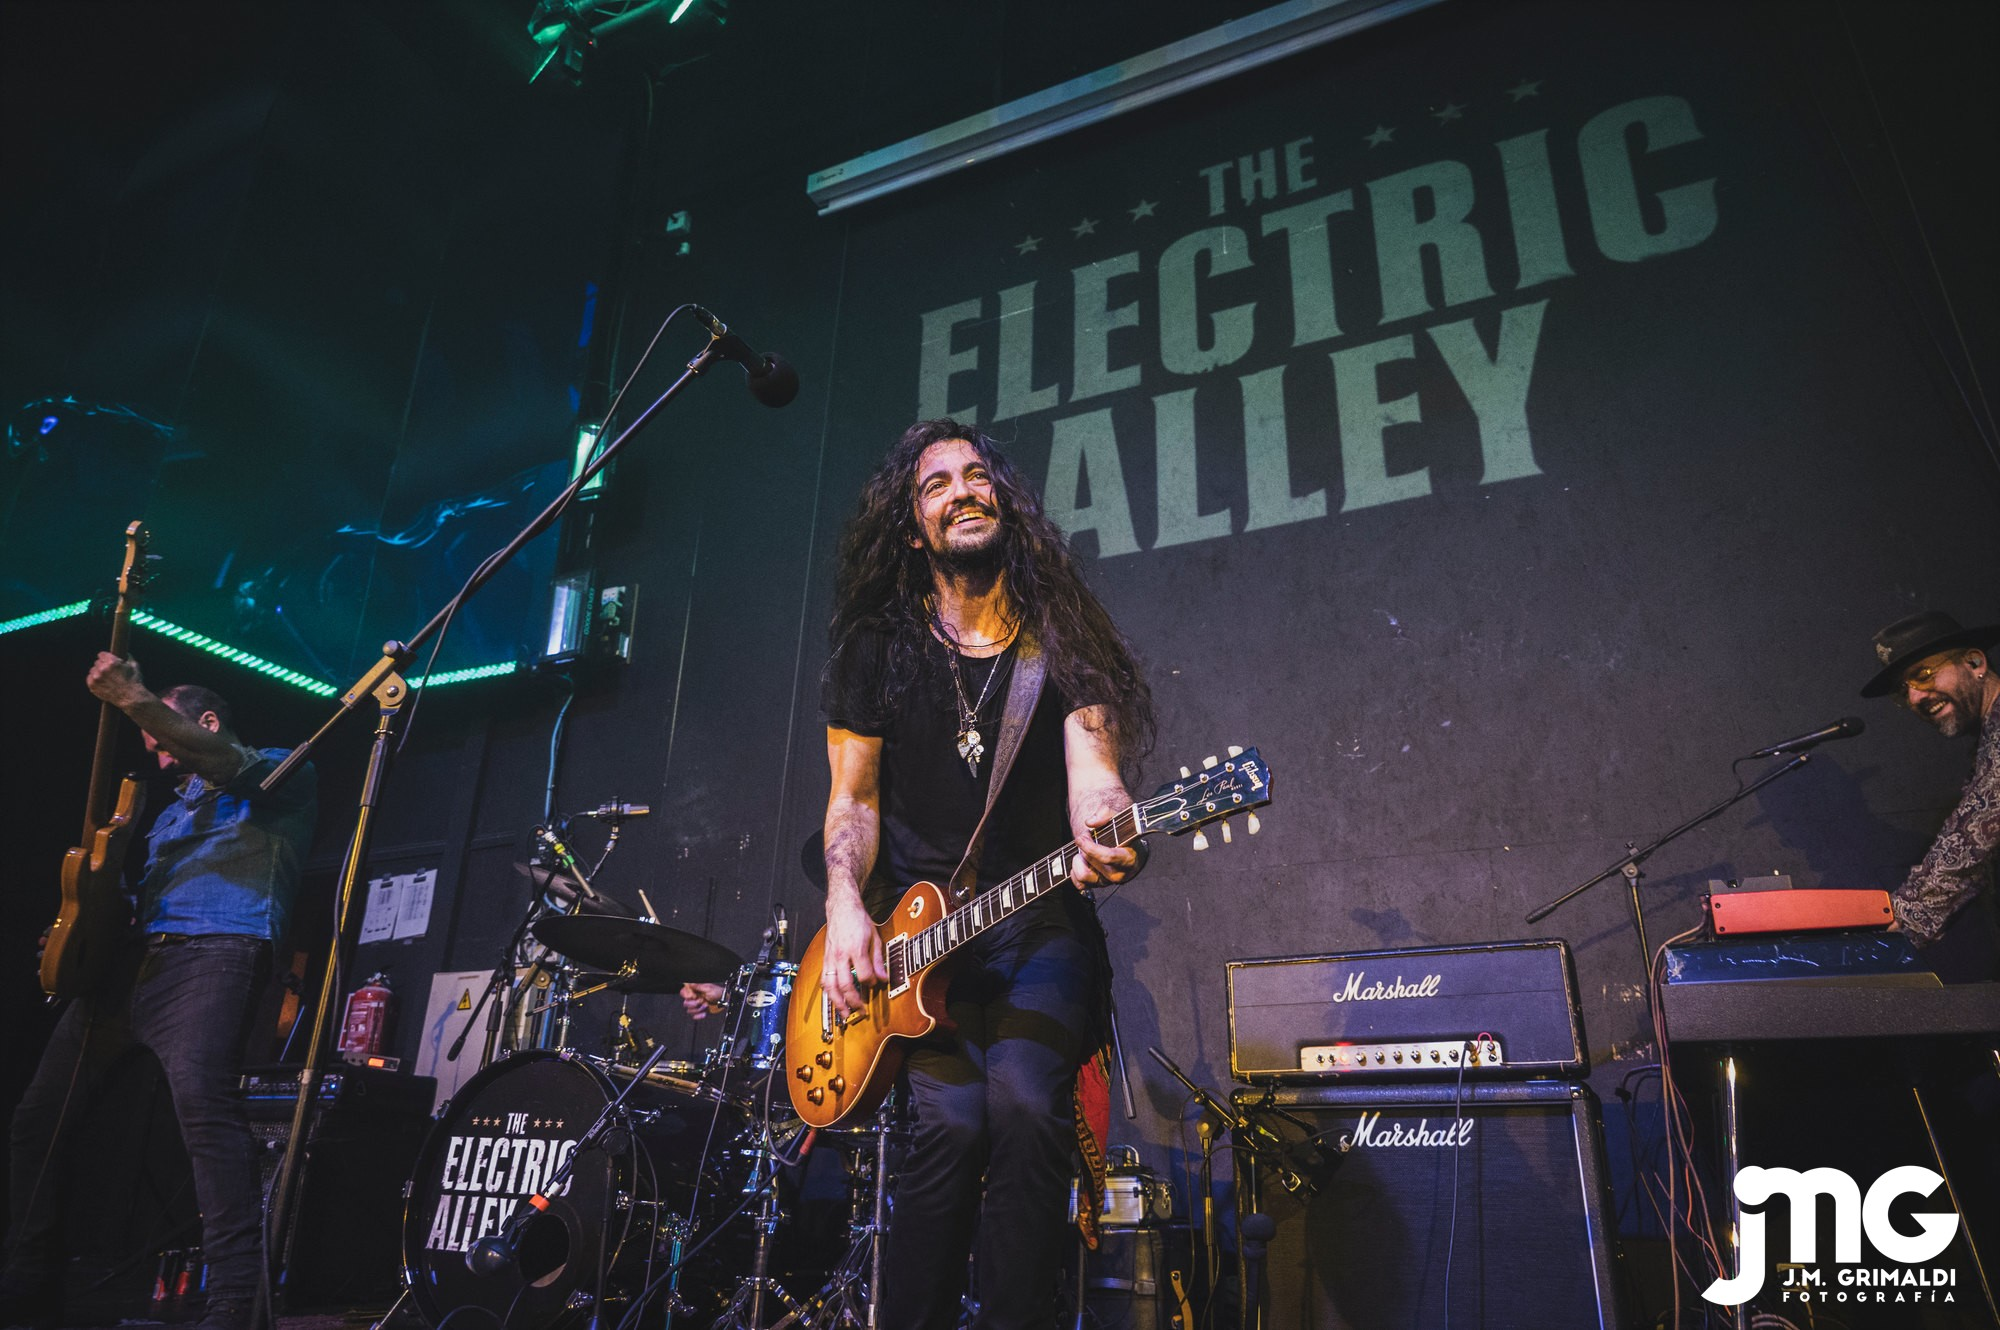 ELECTRIC ALLEY 02_JMZ2707